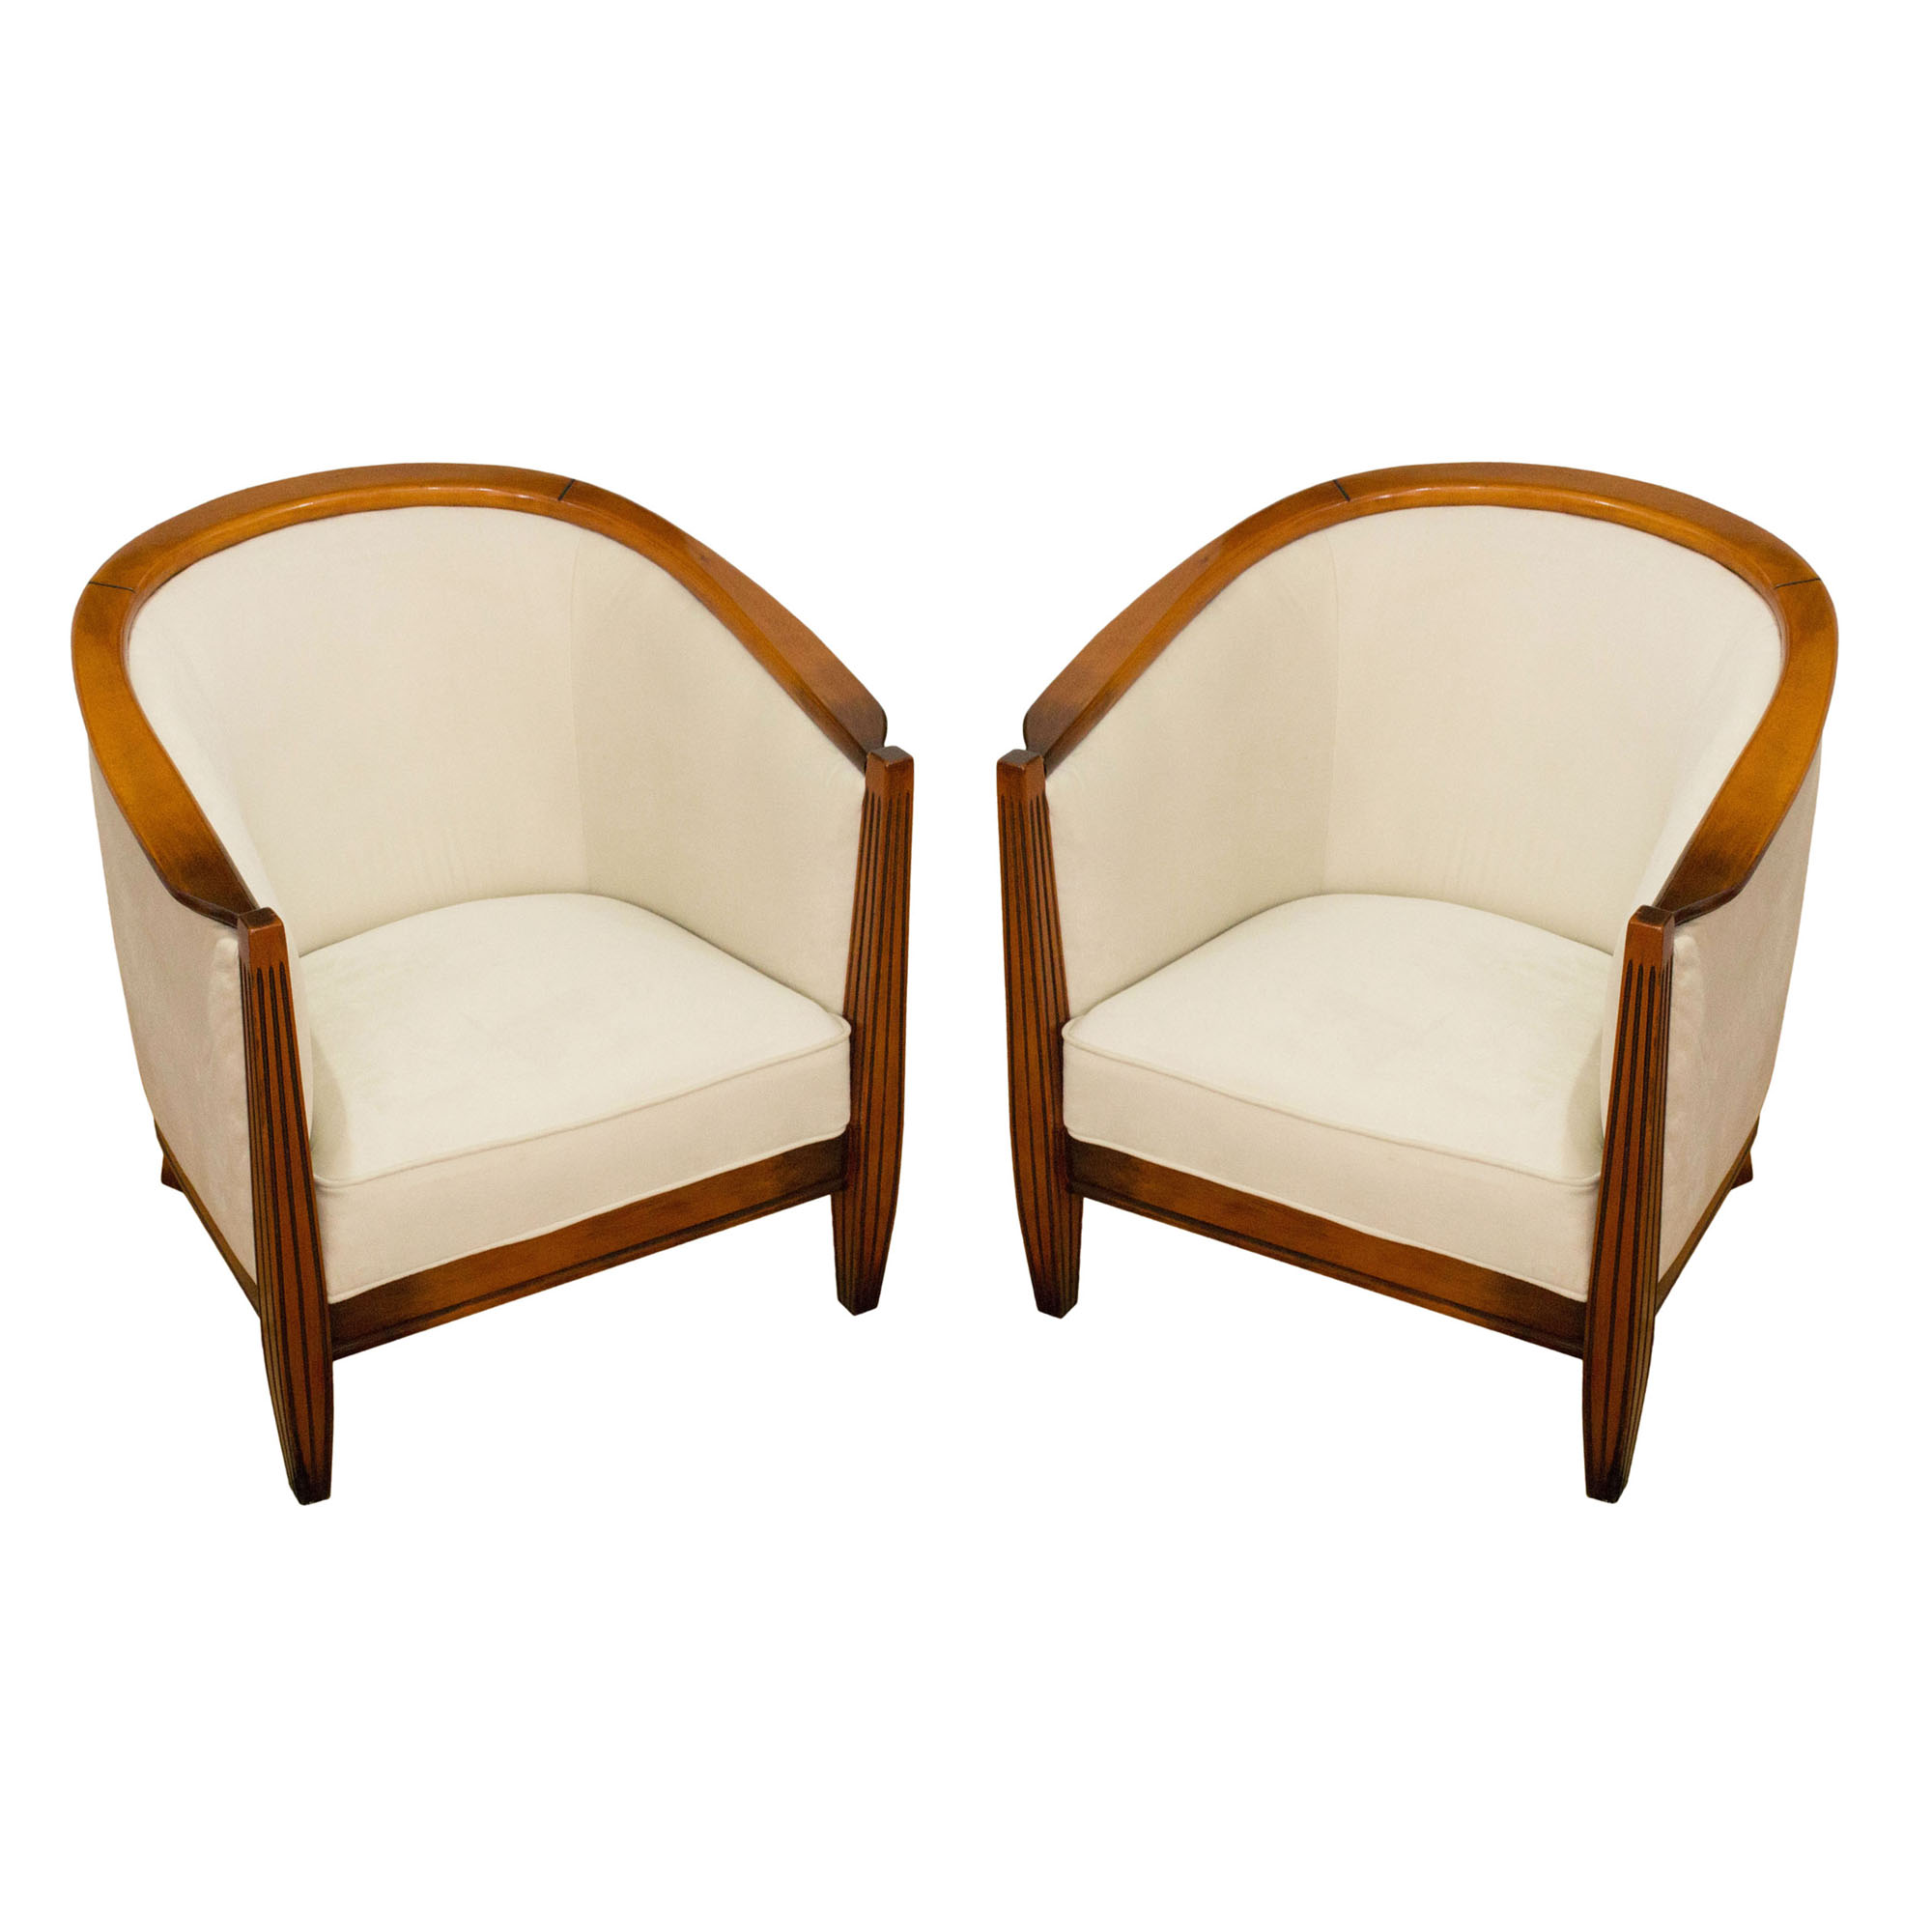 elegant pair of art deco armchairs made in france in the 1970s mid century. Black Bedroom Furniture Sets. Home Design Ideas